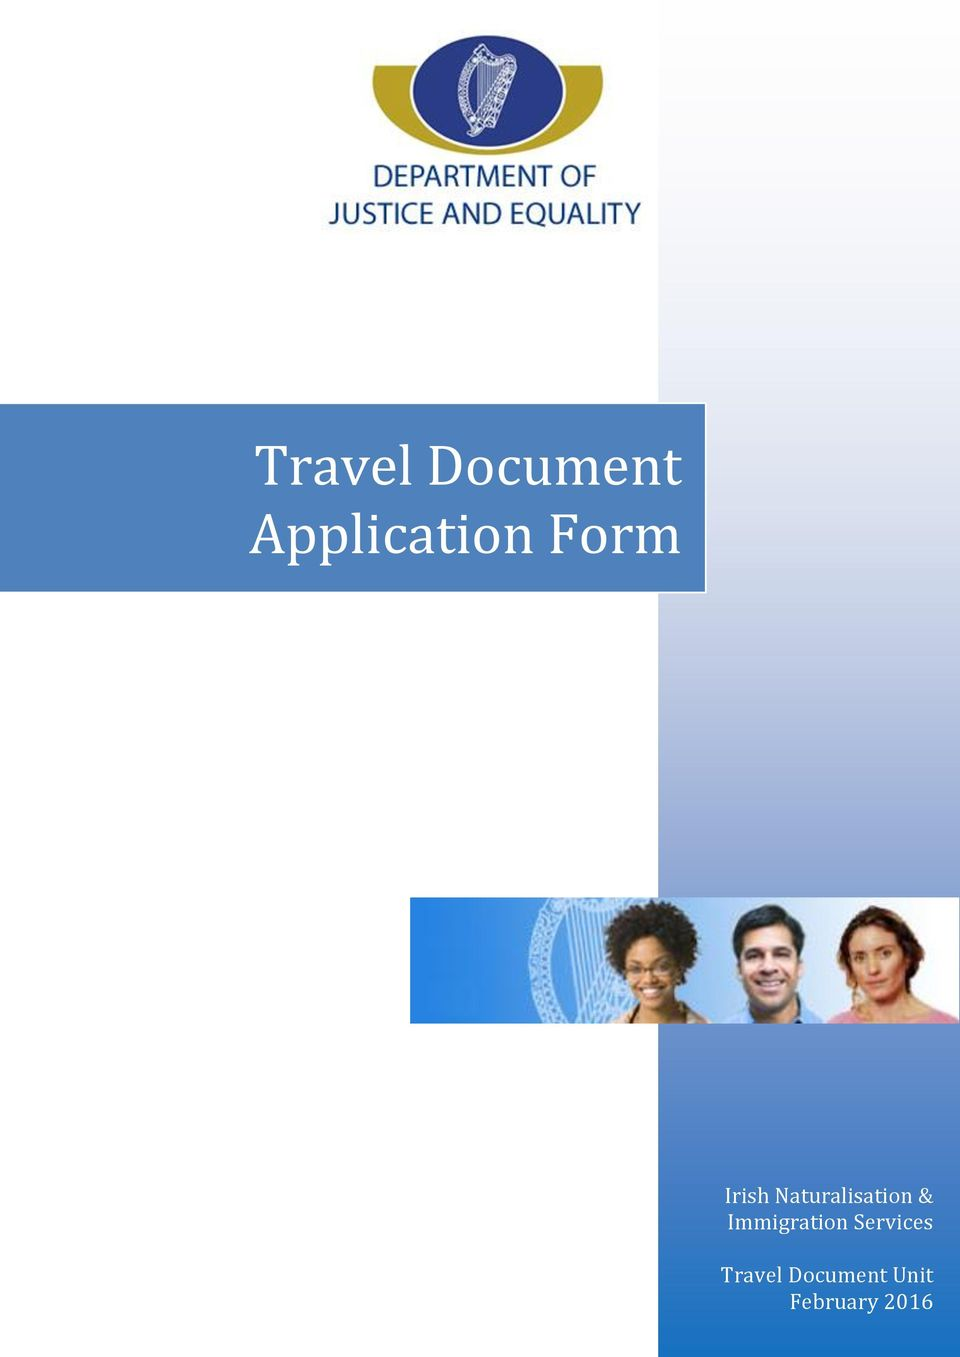 Immigration Services Travel